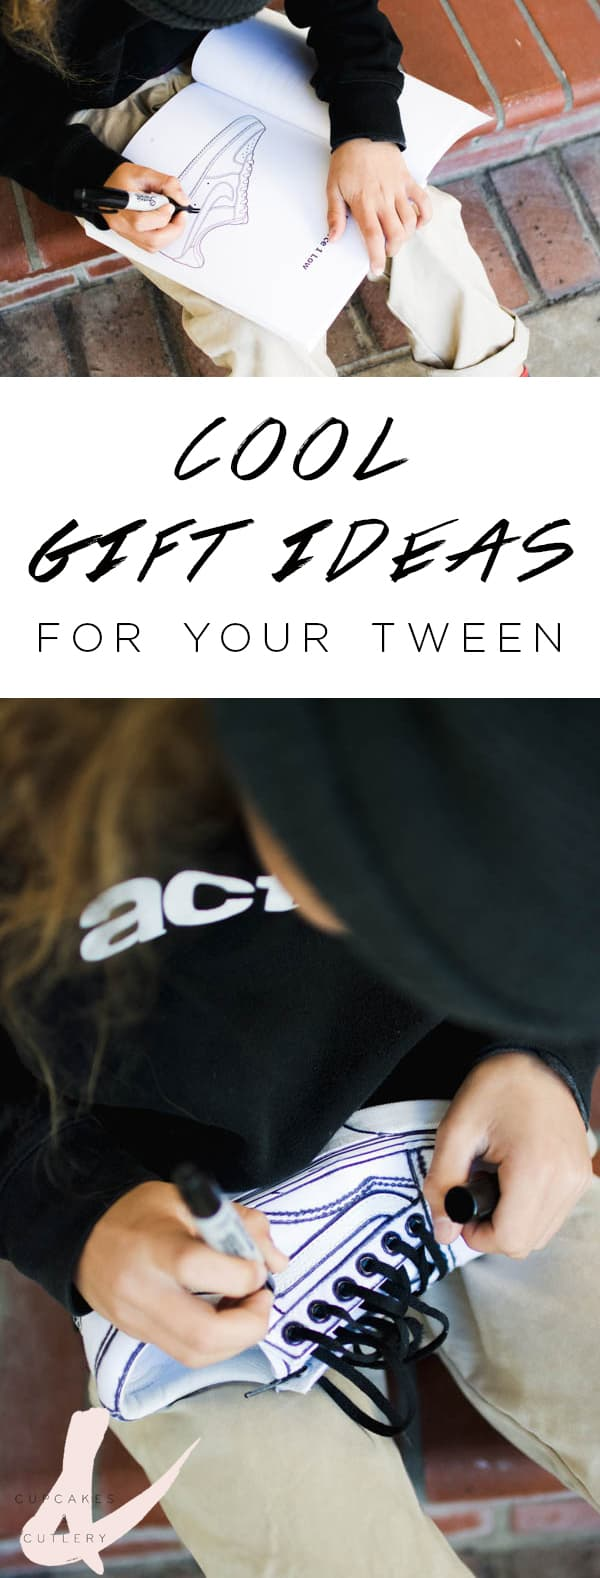 Cool gift ideas for tween boys with text overlay.